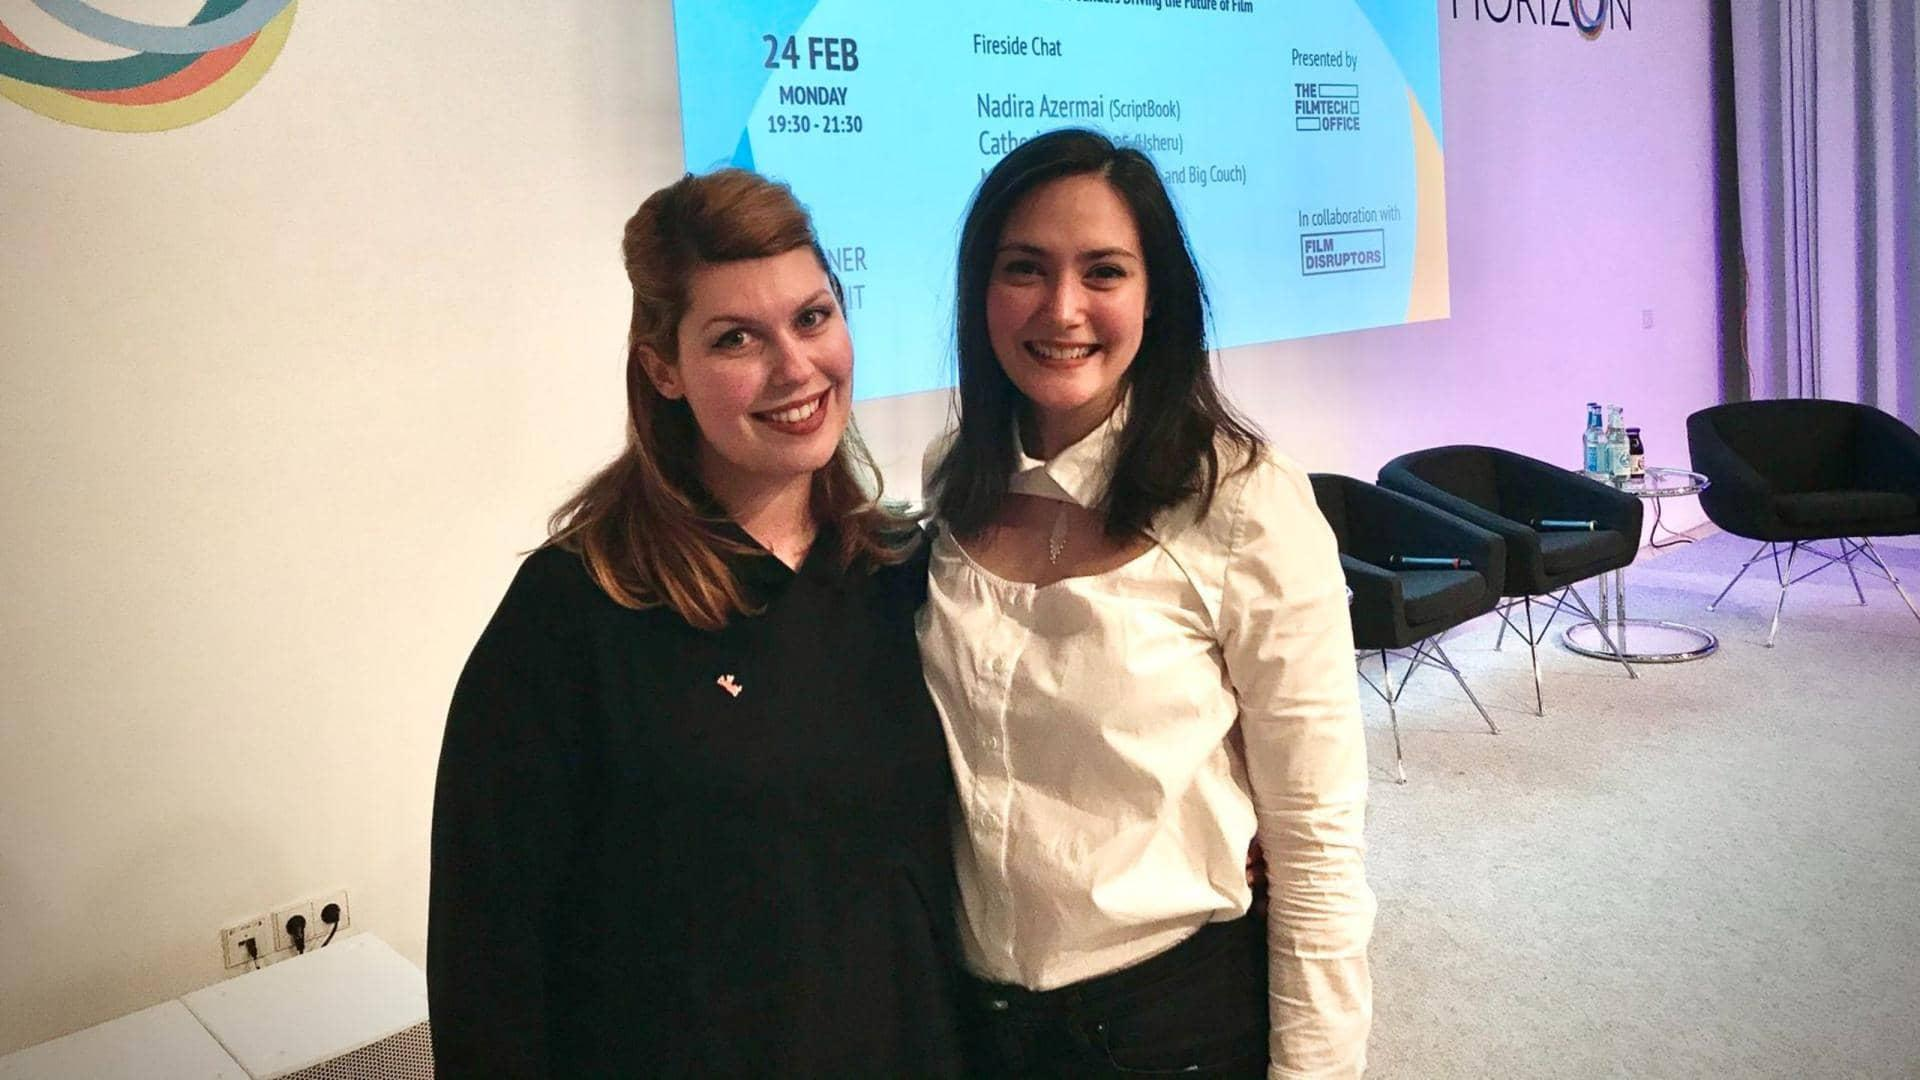 Maria Tanjala and Irina Albita are the co-founders of FilmChain, the fintech platform that pays professionals in the film and TV industries.